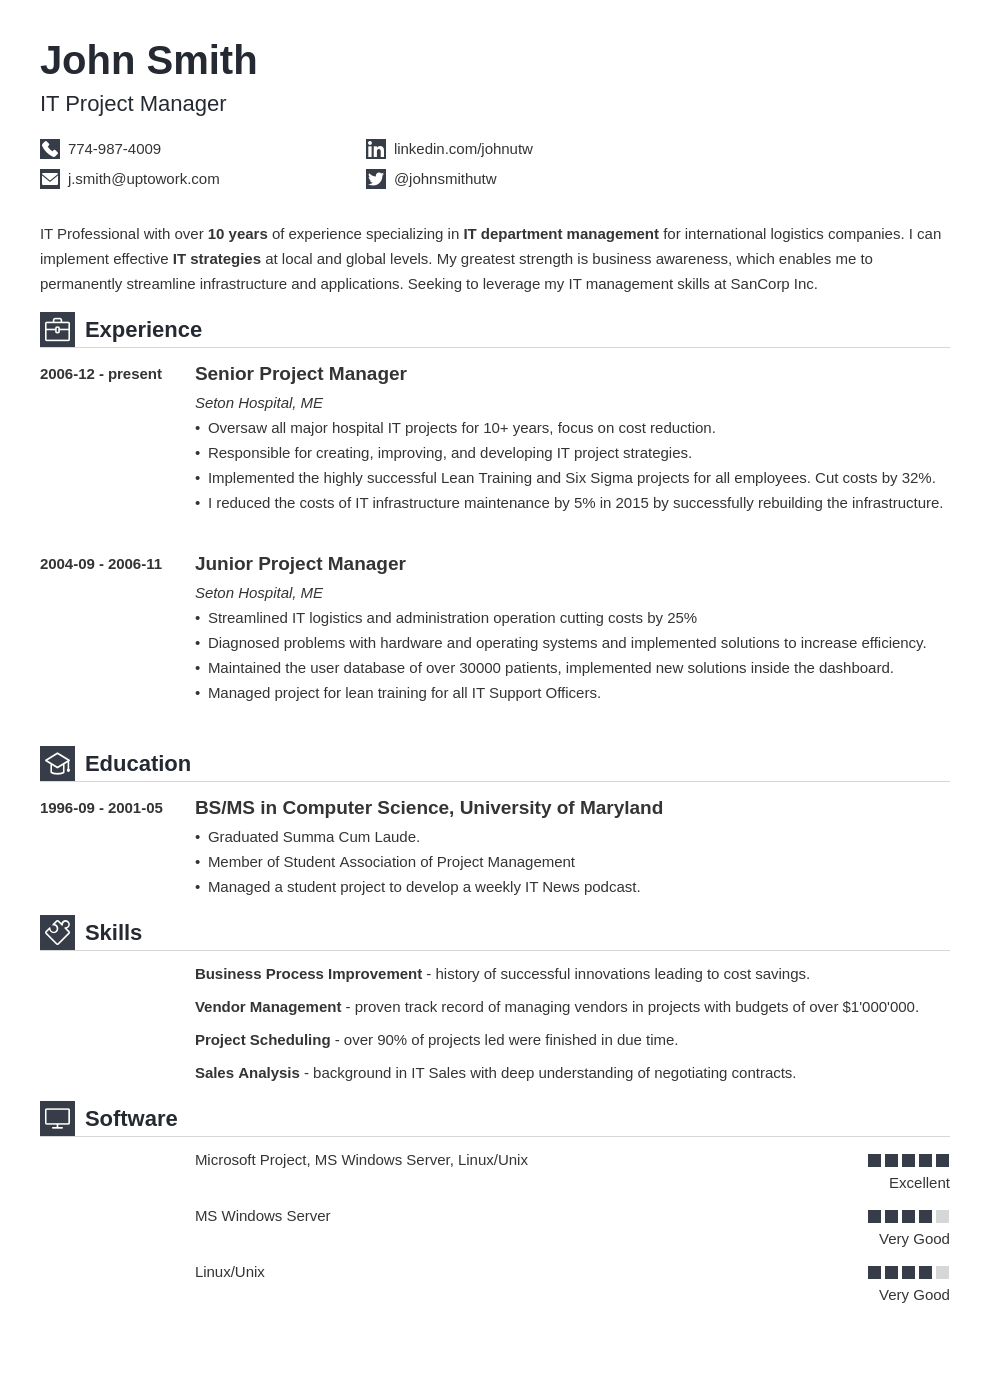 Superb Professional Resume Template Iconic And Template Of A Resume